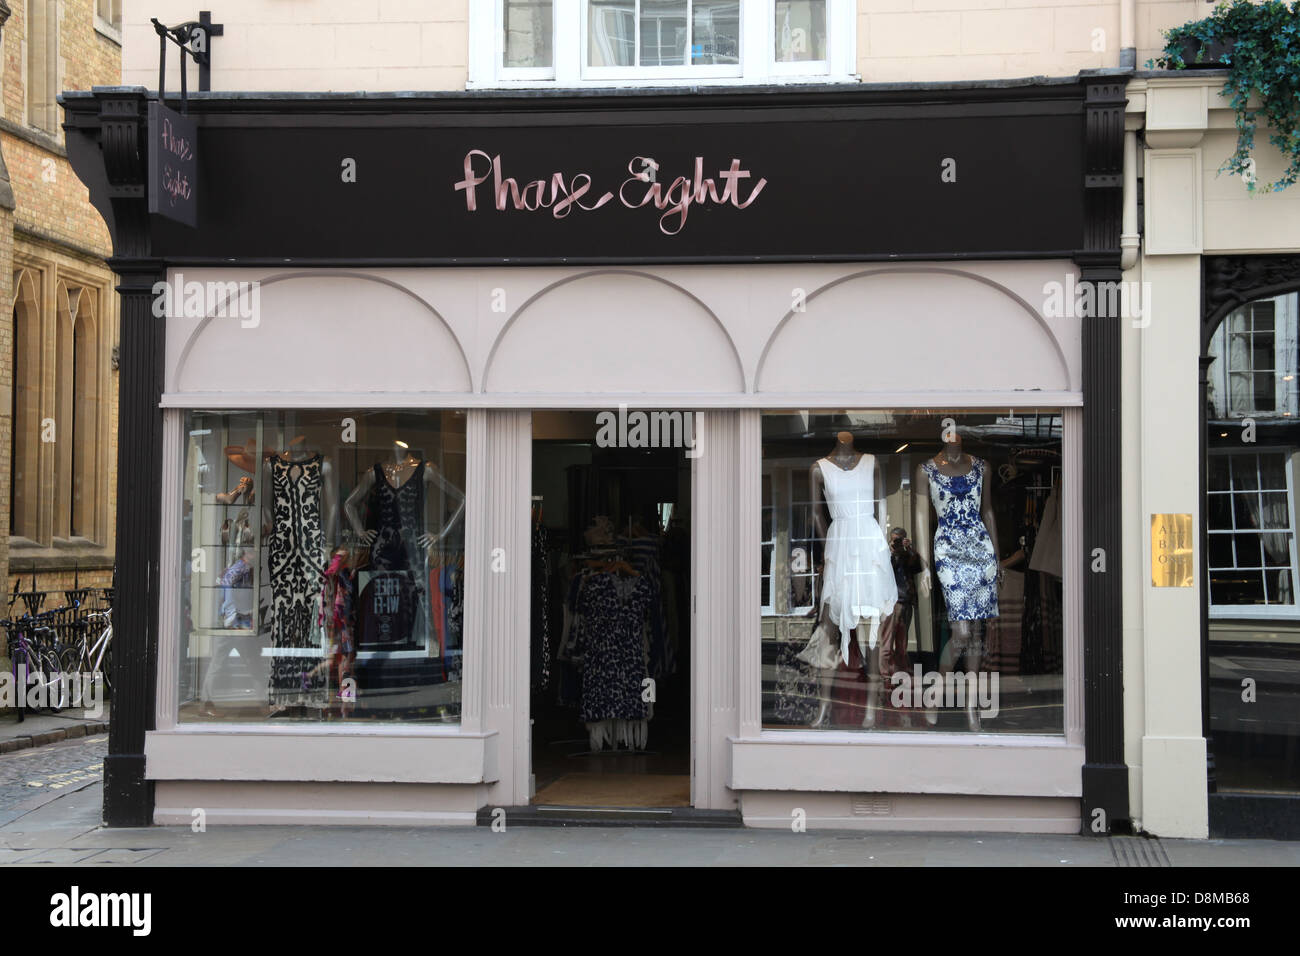 Phase Eight UK clothing store. - Stock Image